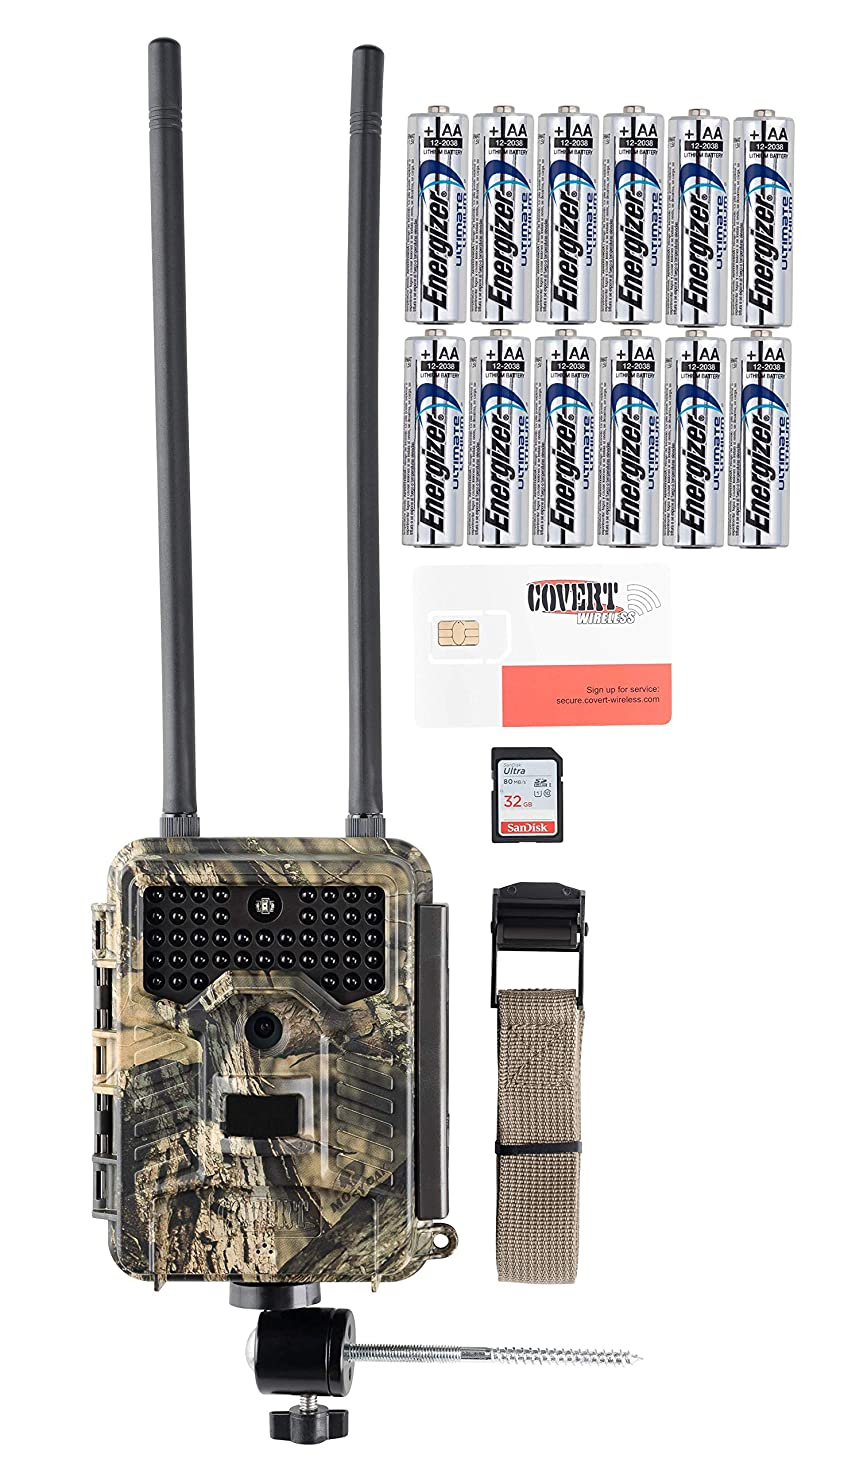 Covert E1 4G LTE Wireless Trail Camera with Batterries, Memory Card, and Mount (AT&T)